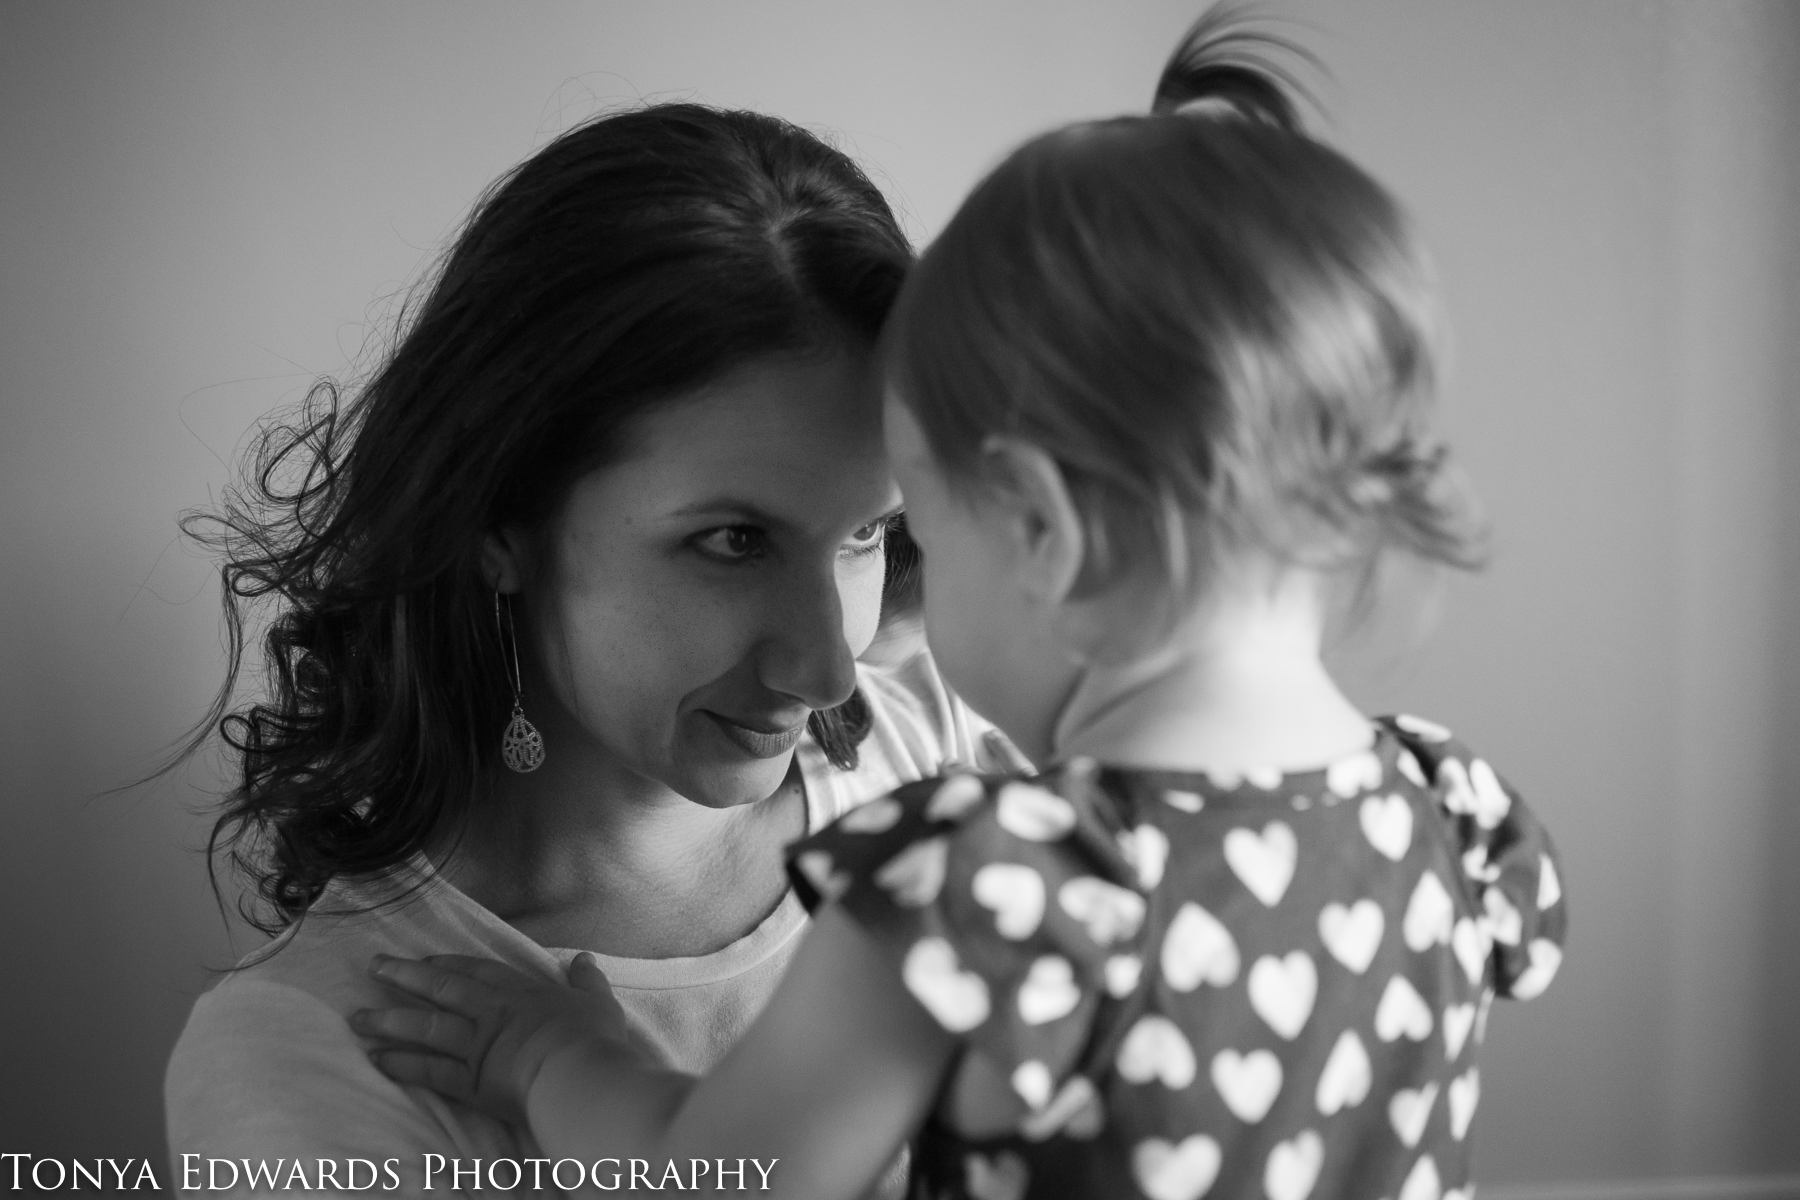 Tonya Edwards Photography | Oroville Photographer | mama and daughter looking into each others eyes natural poses in black and white